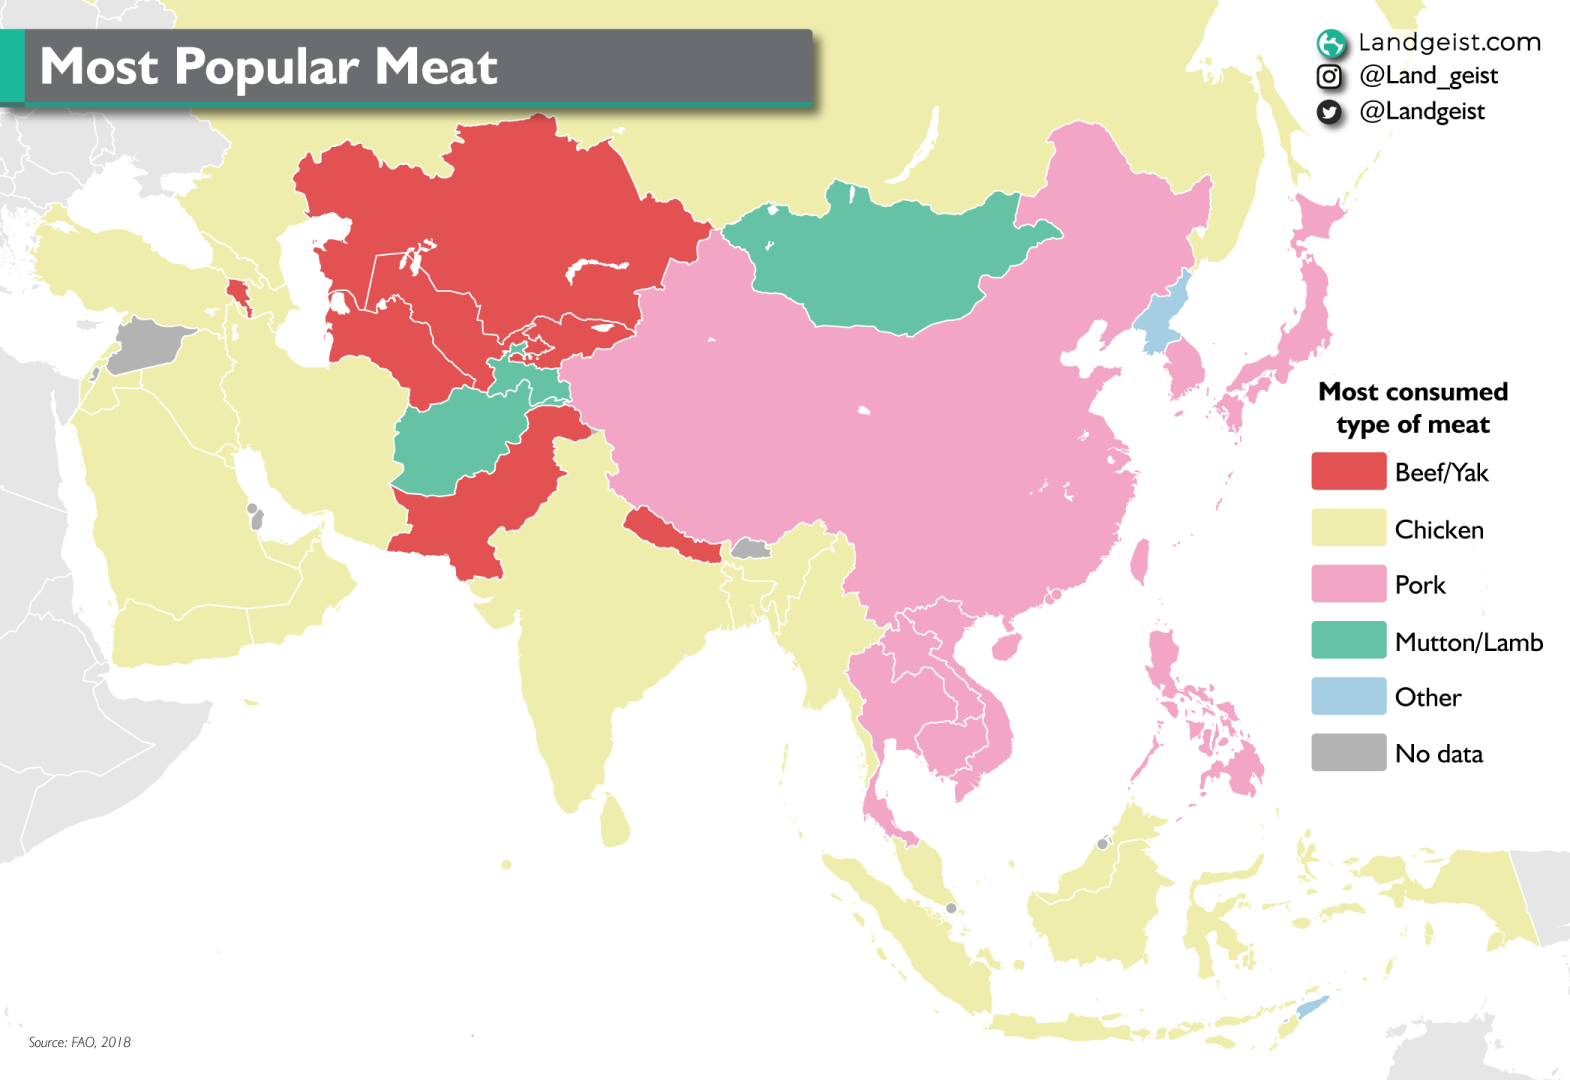 Most popular / consumed meat in Asian countries.